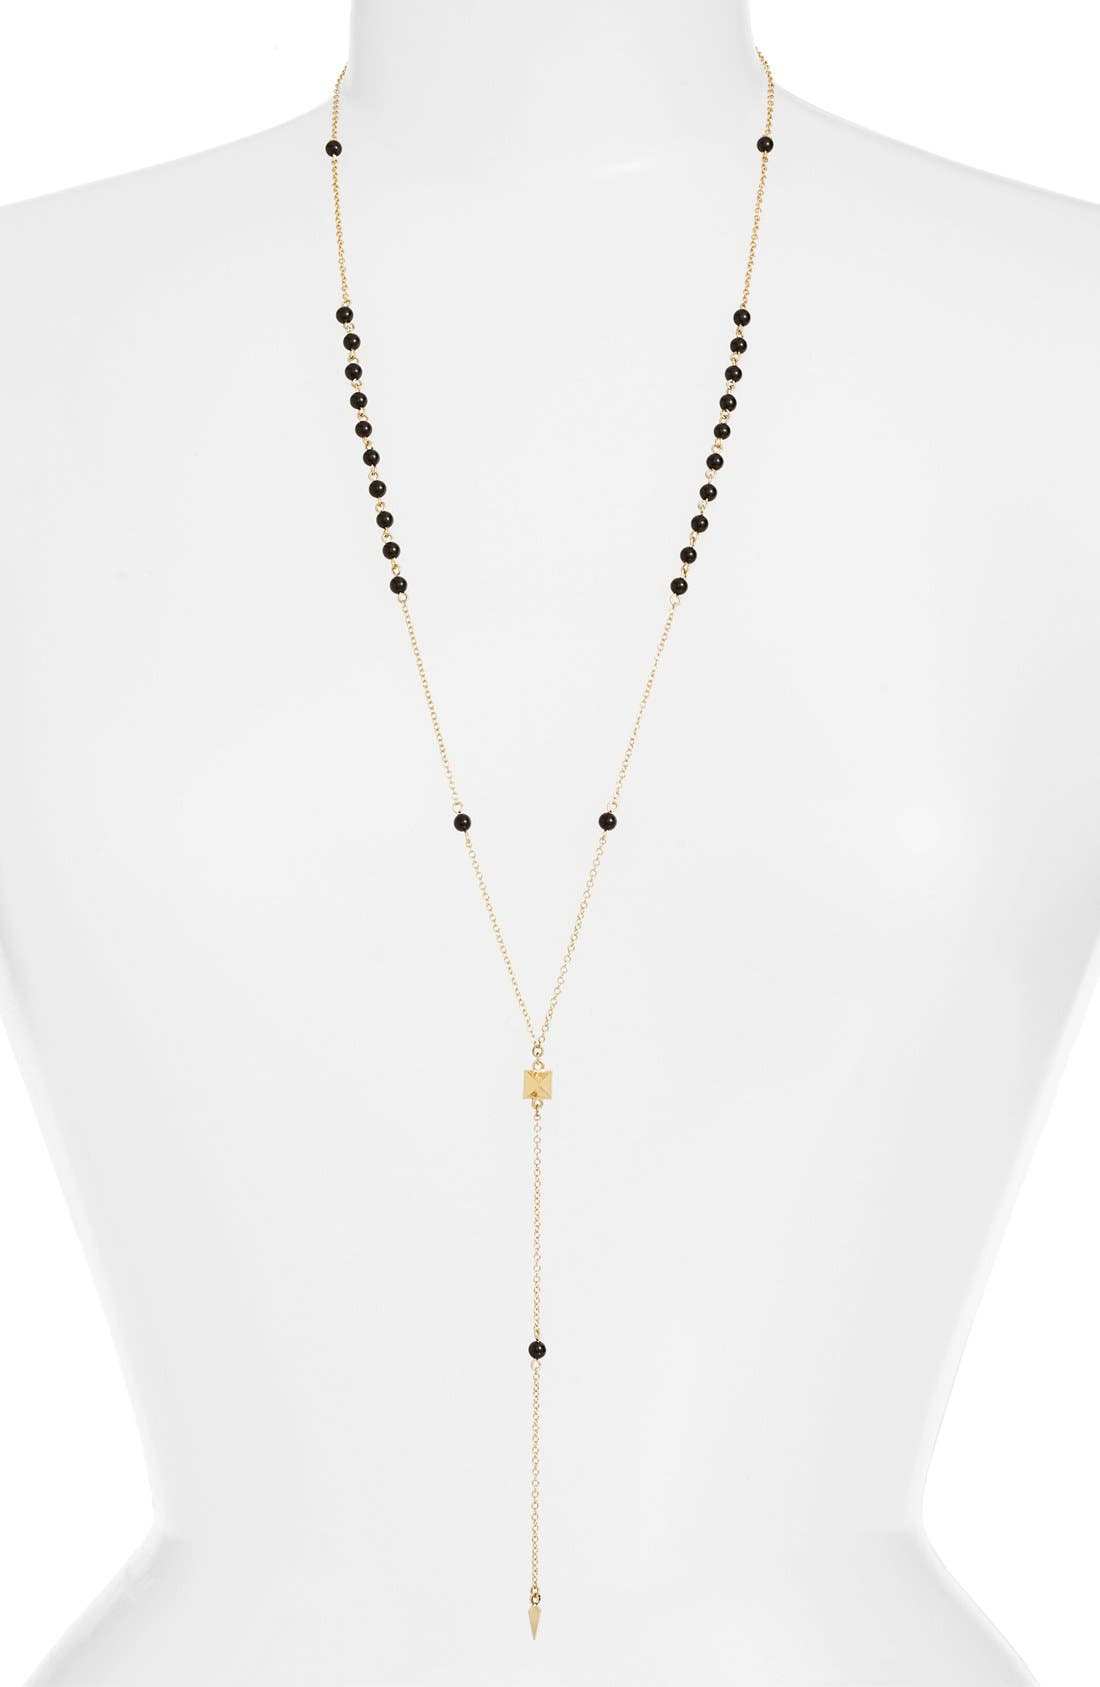 'Waiting in Line' Beaded Onyx Y-Chain Necklace,                             Main thumbnail 1, color,                             710